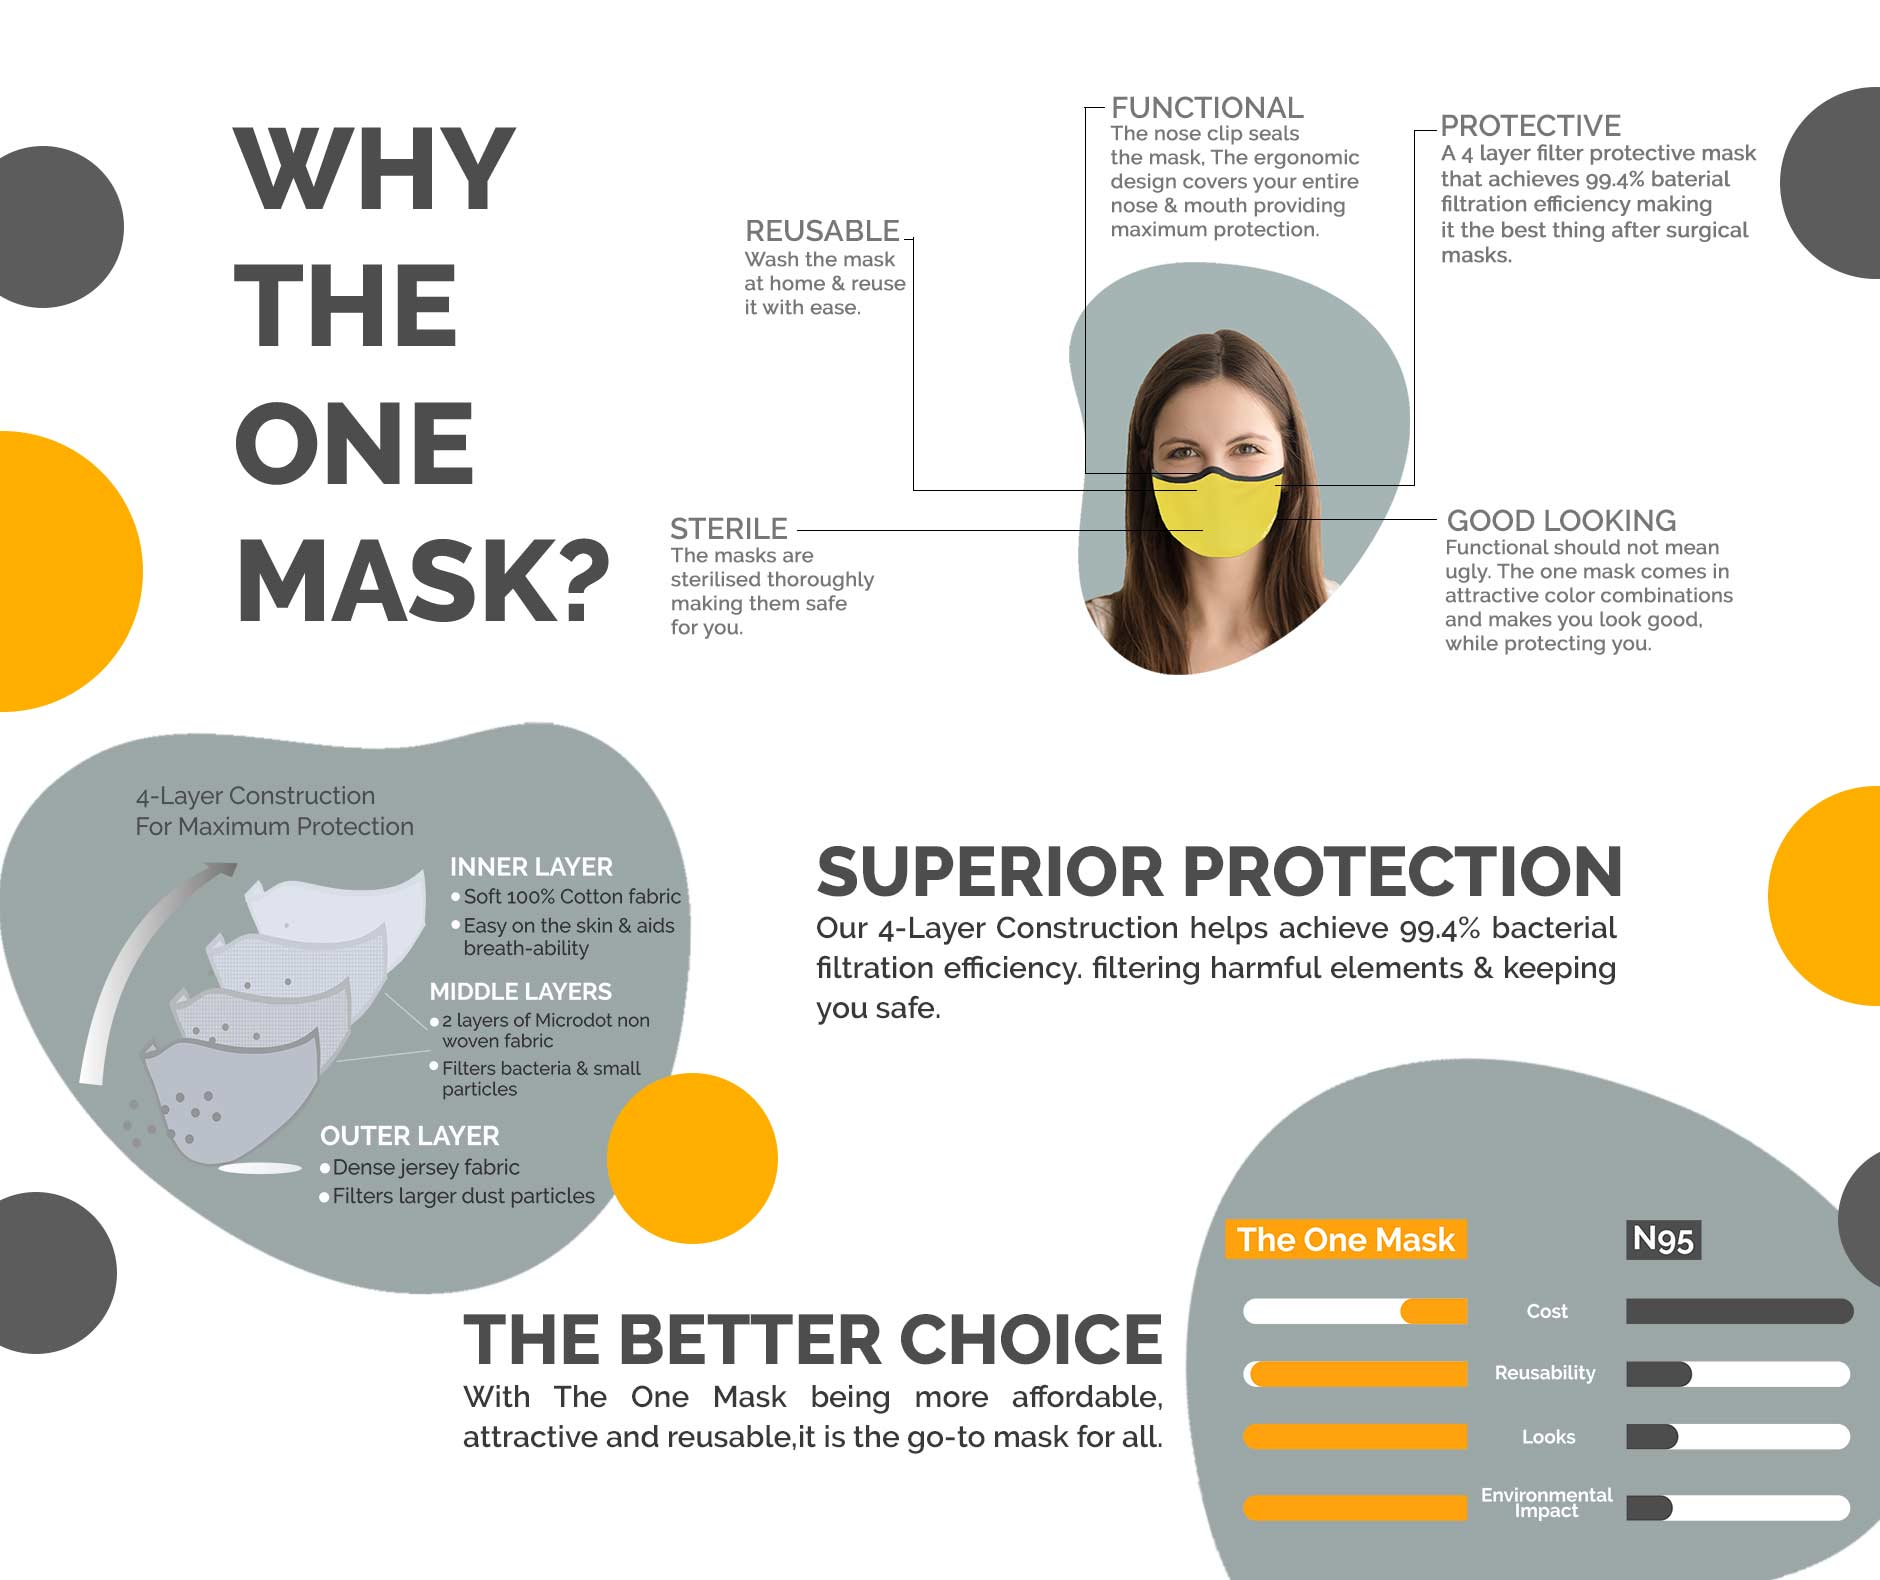 Why the One Mask?